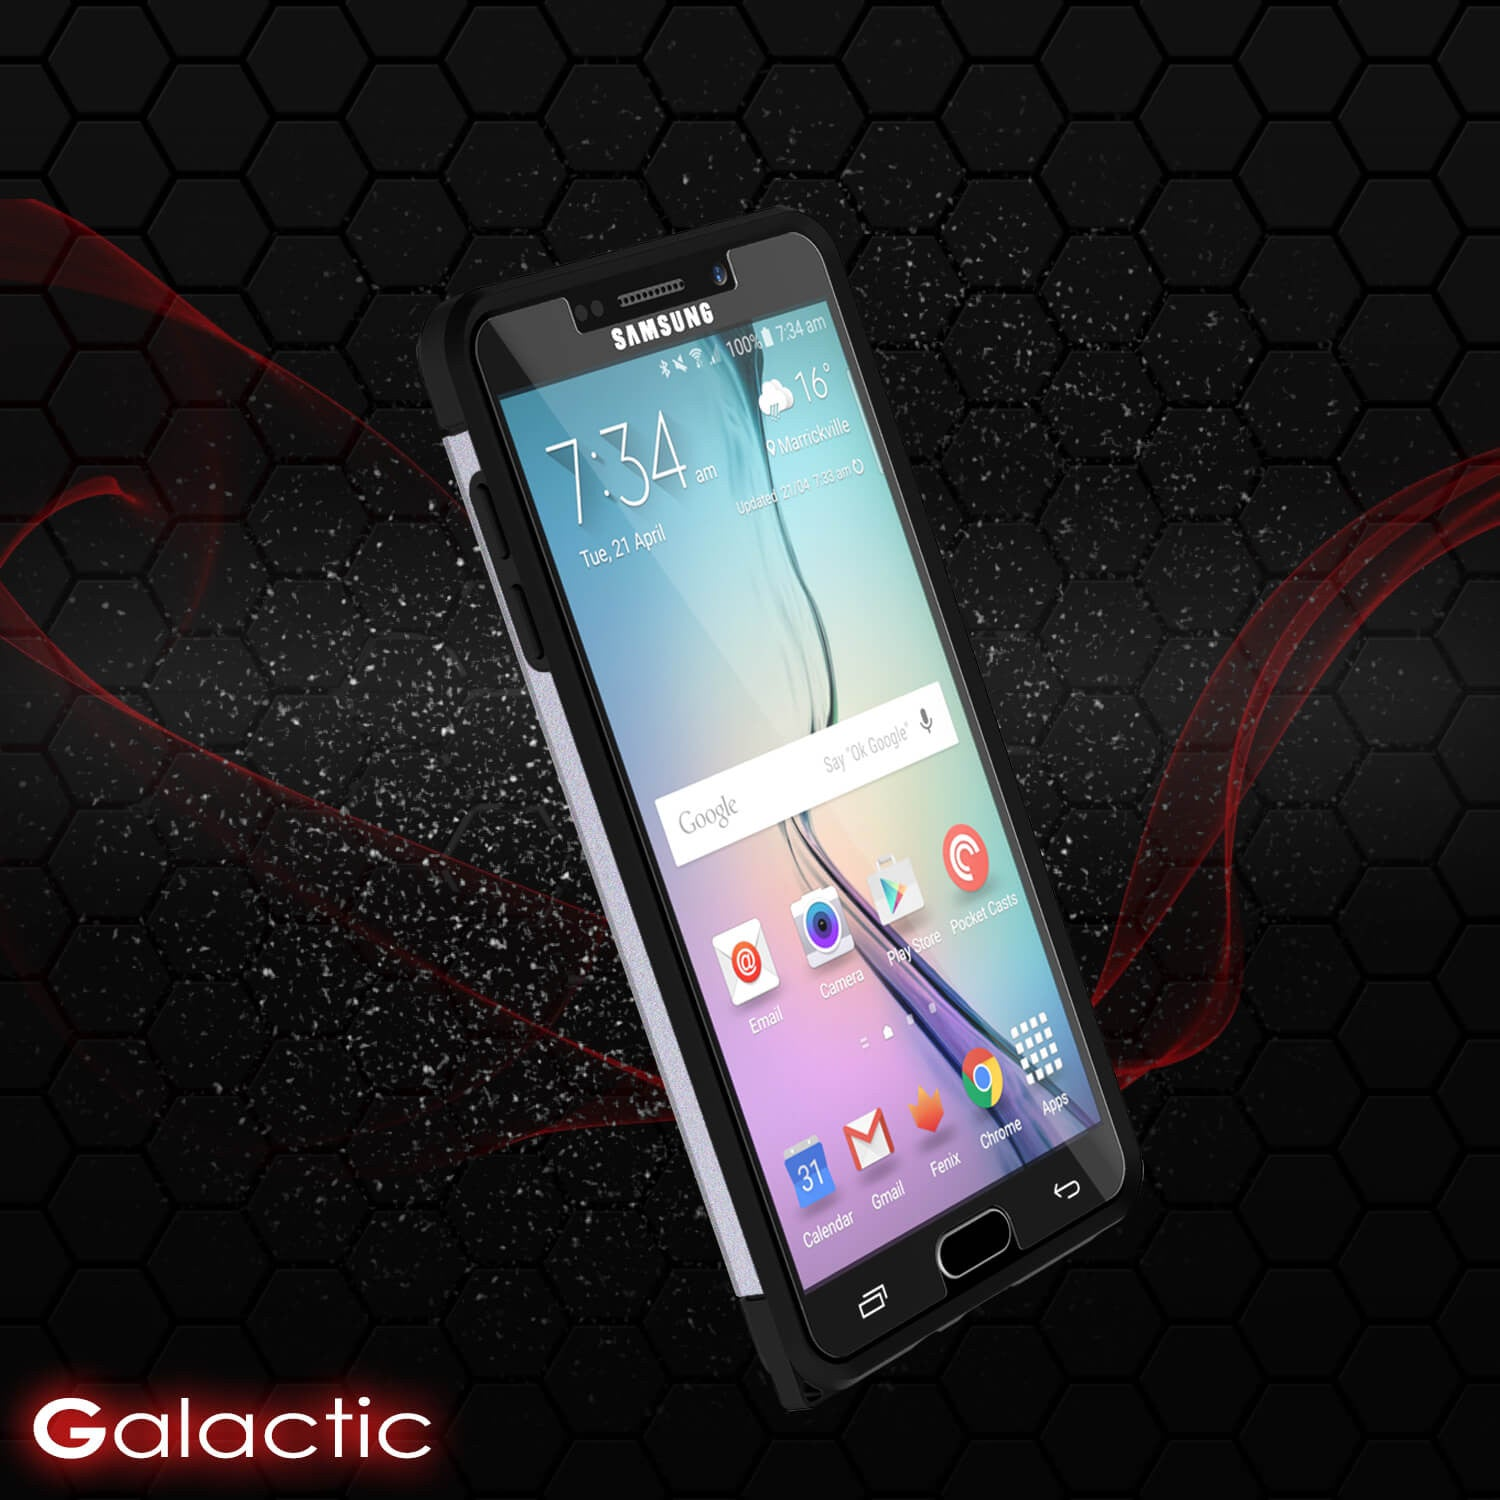 Galaxy Note 5 Case PunkCase Galactic SIlver Series Slim Armor Soft Cover Case w/ Tempered Glass